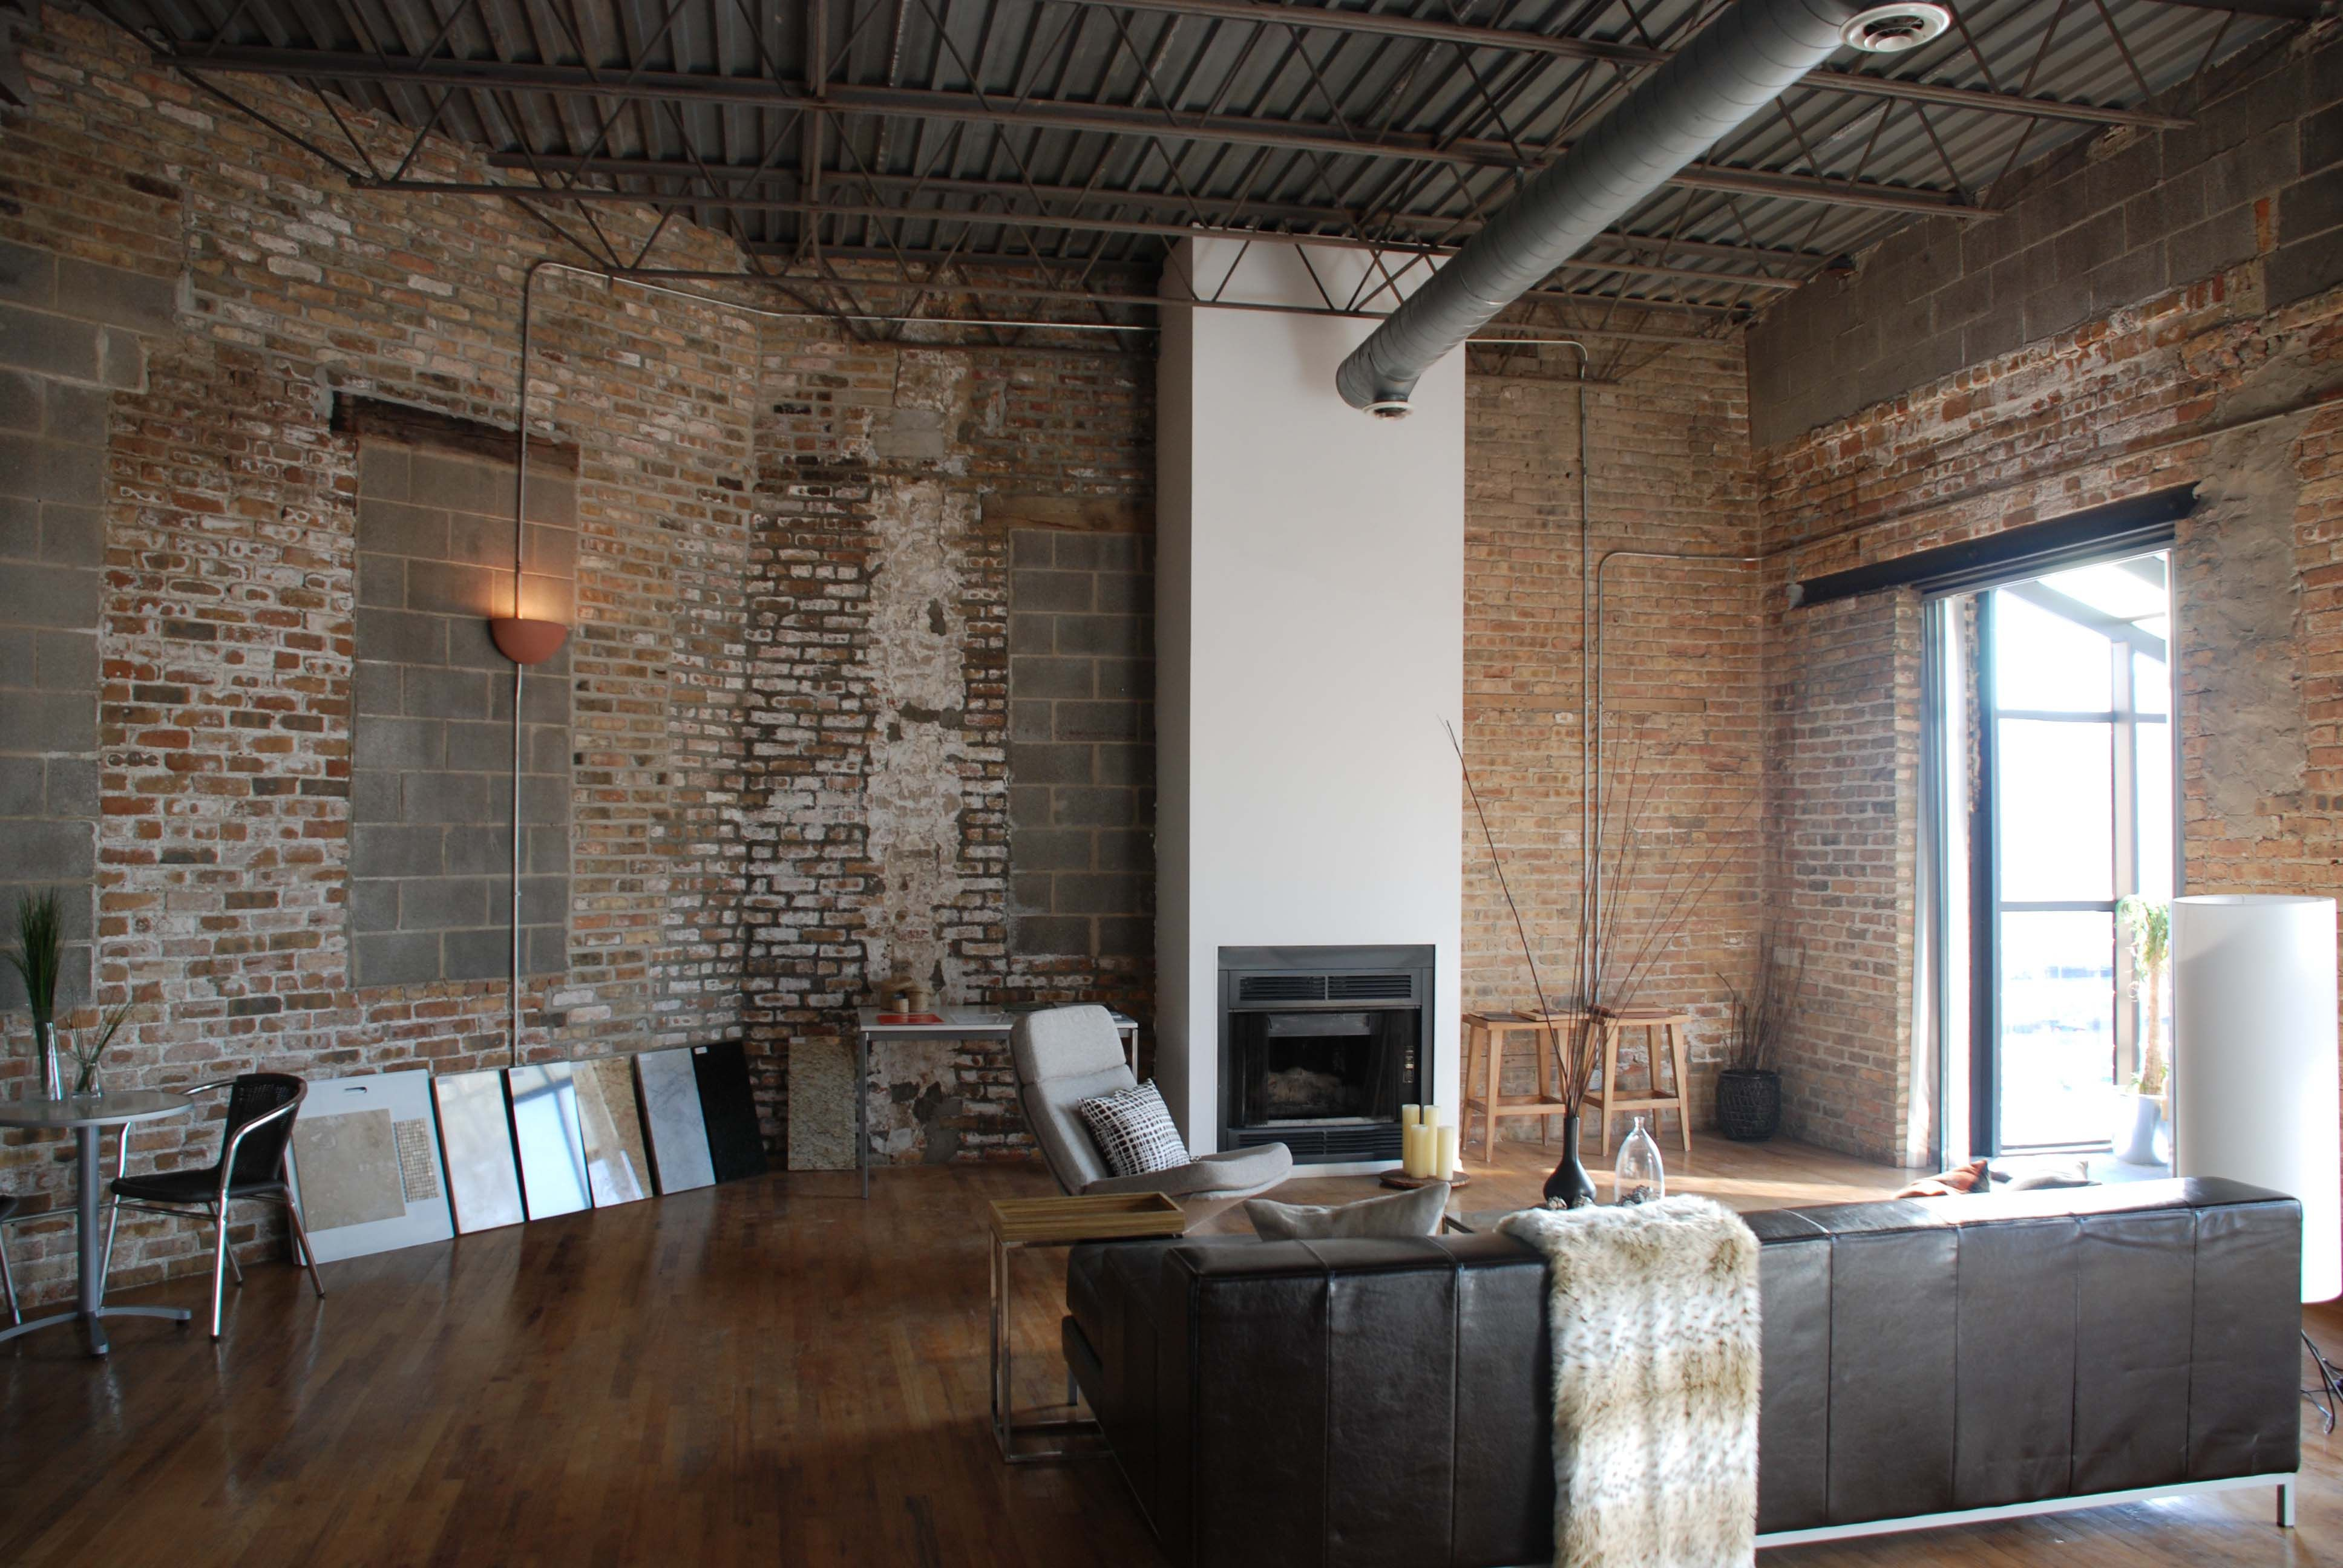 Industrial Loft Apartment on Pinterest  Apartment